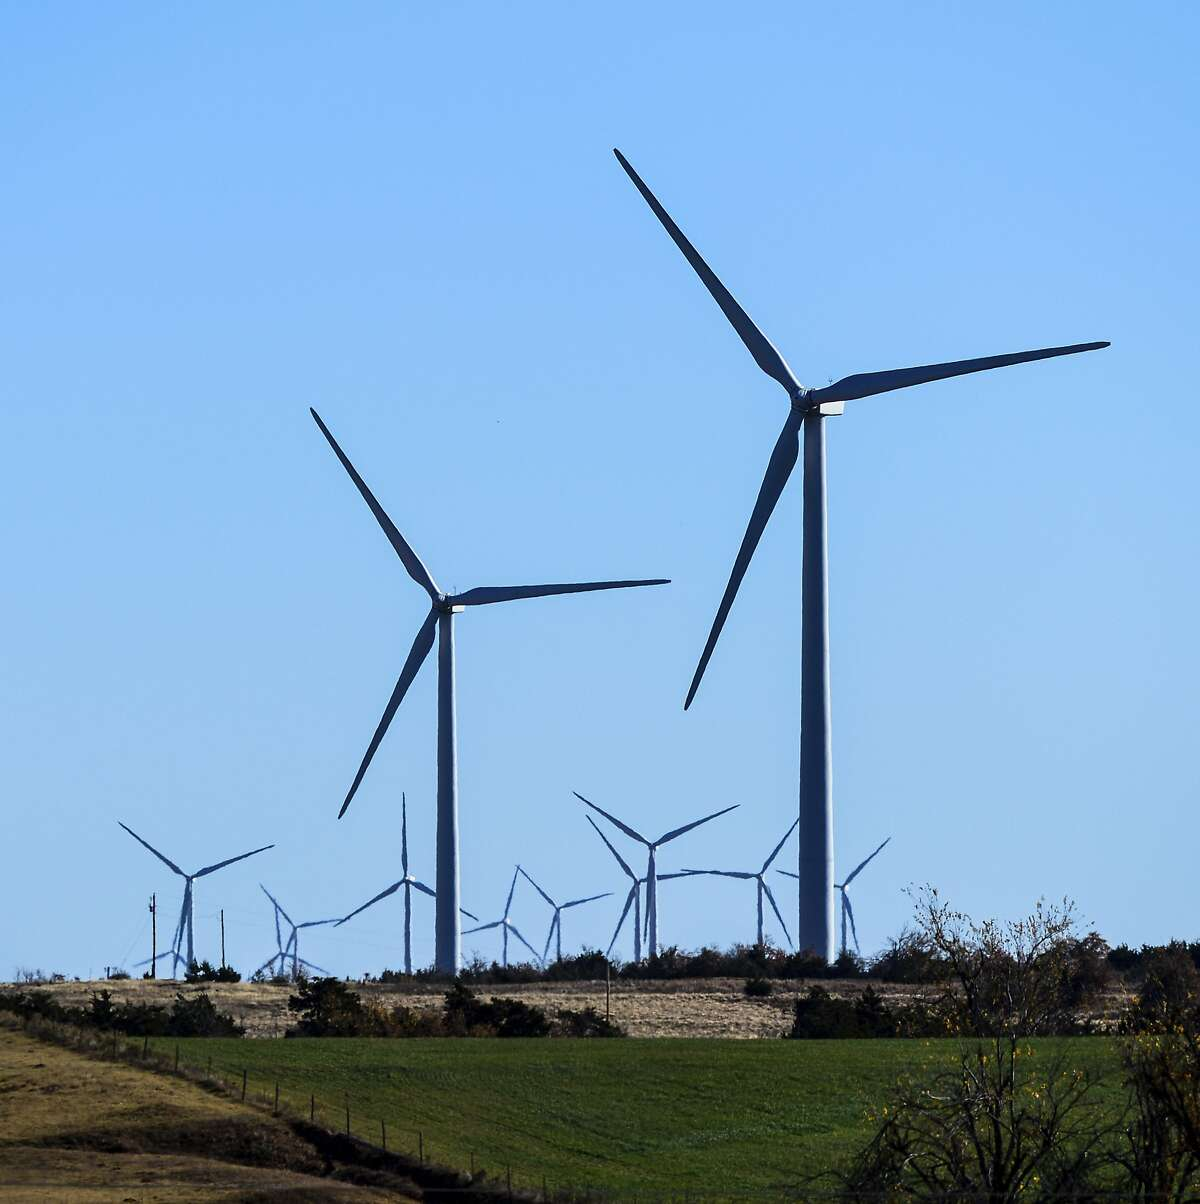 This photo provided by Google shows windmills at a wind farm in Minco, Okla., that provides Google with some of its renewable energy. Google says it believes that beginning in 2017, it will have amassed enough renewable energy to meet all of its electricity needs throughout the world. (Tim Boyles Photography/Google via AP)